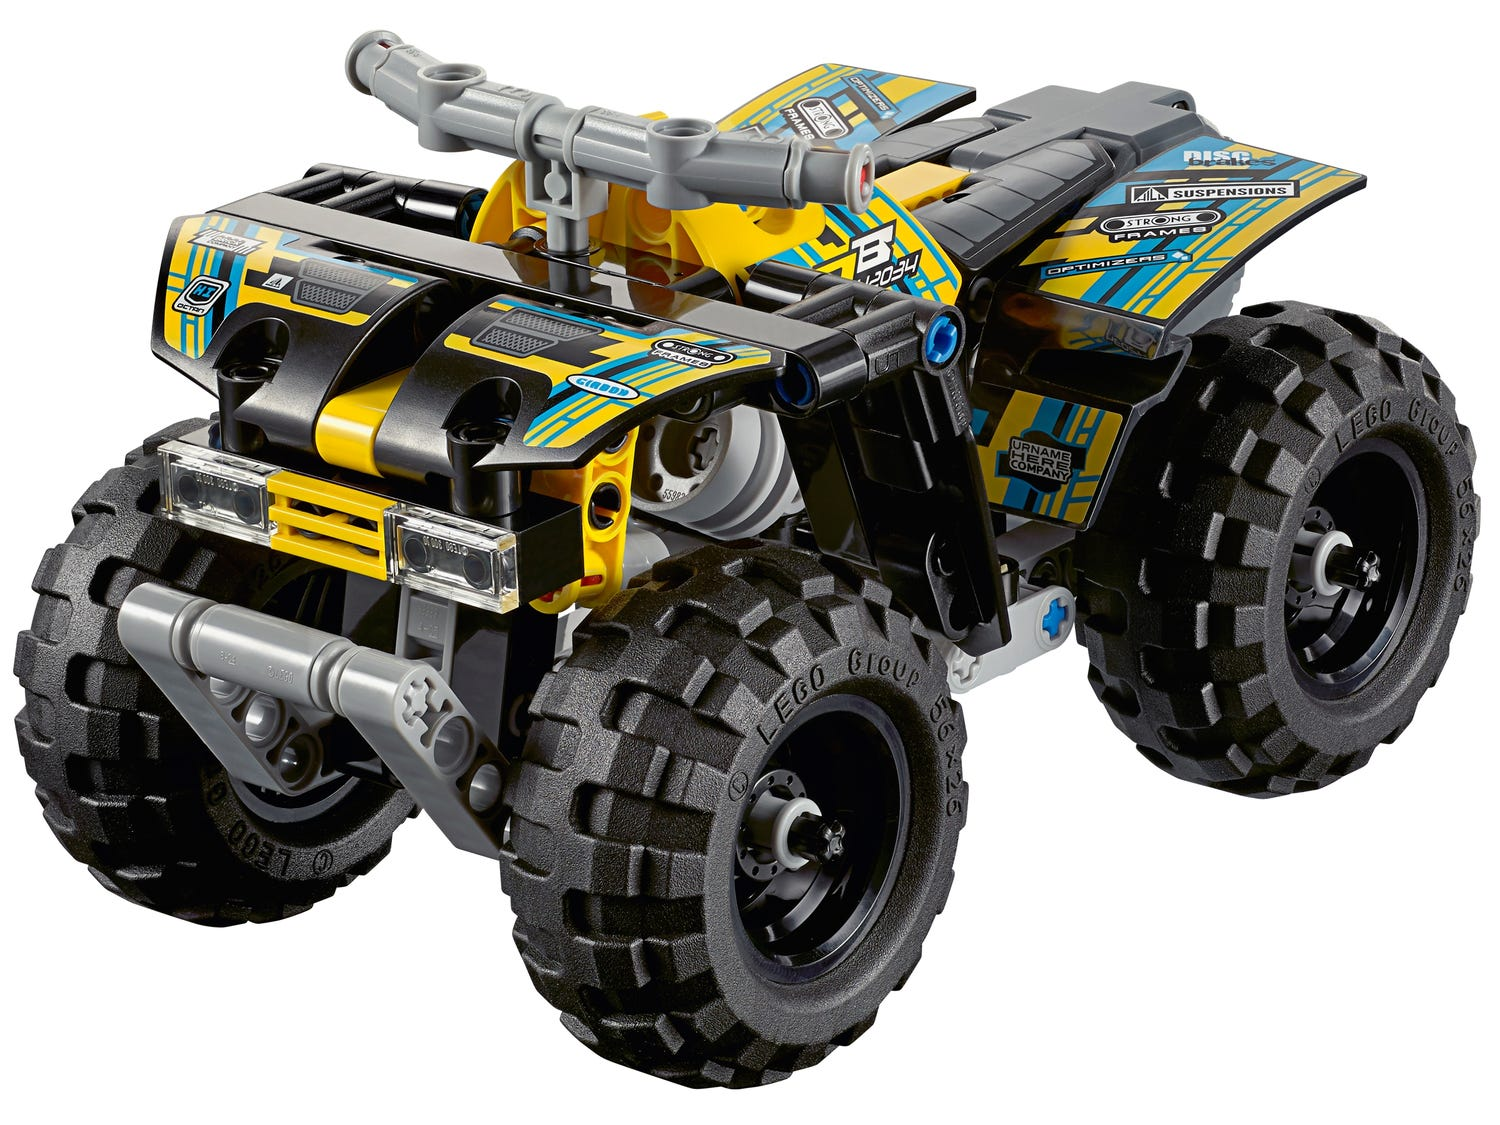 Quad Bike 42034 | Technic™ | Buy online at the Official ...